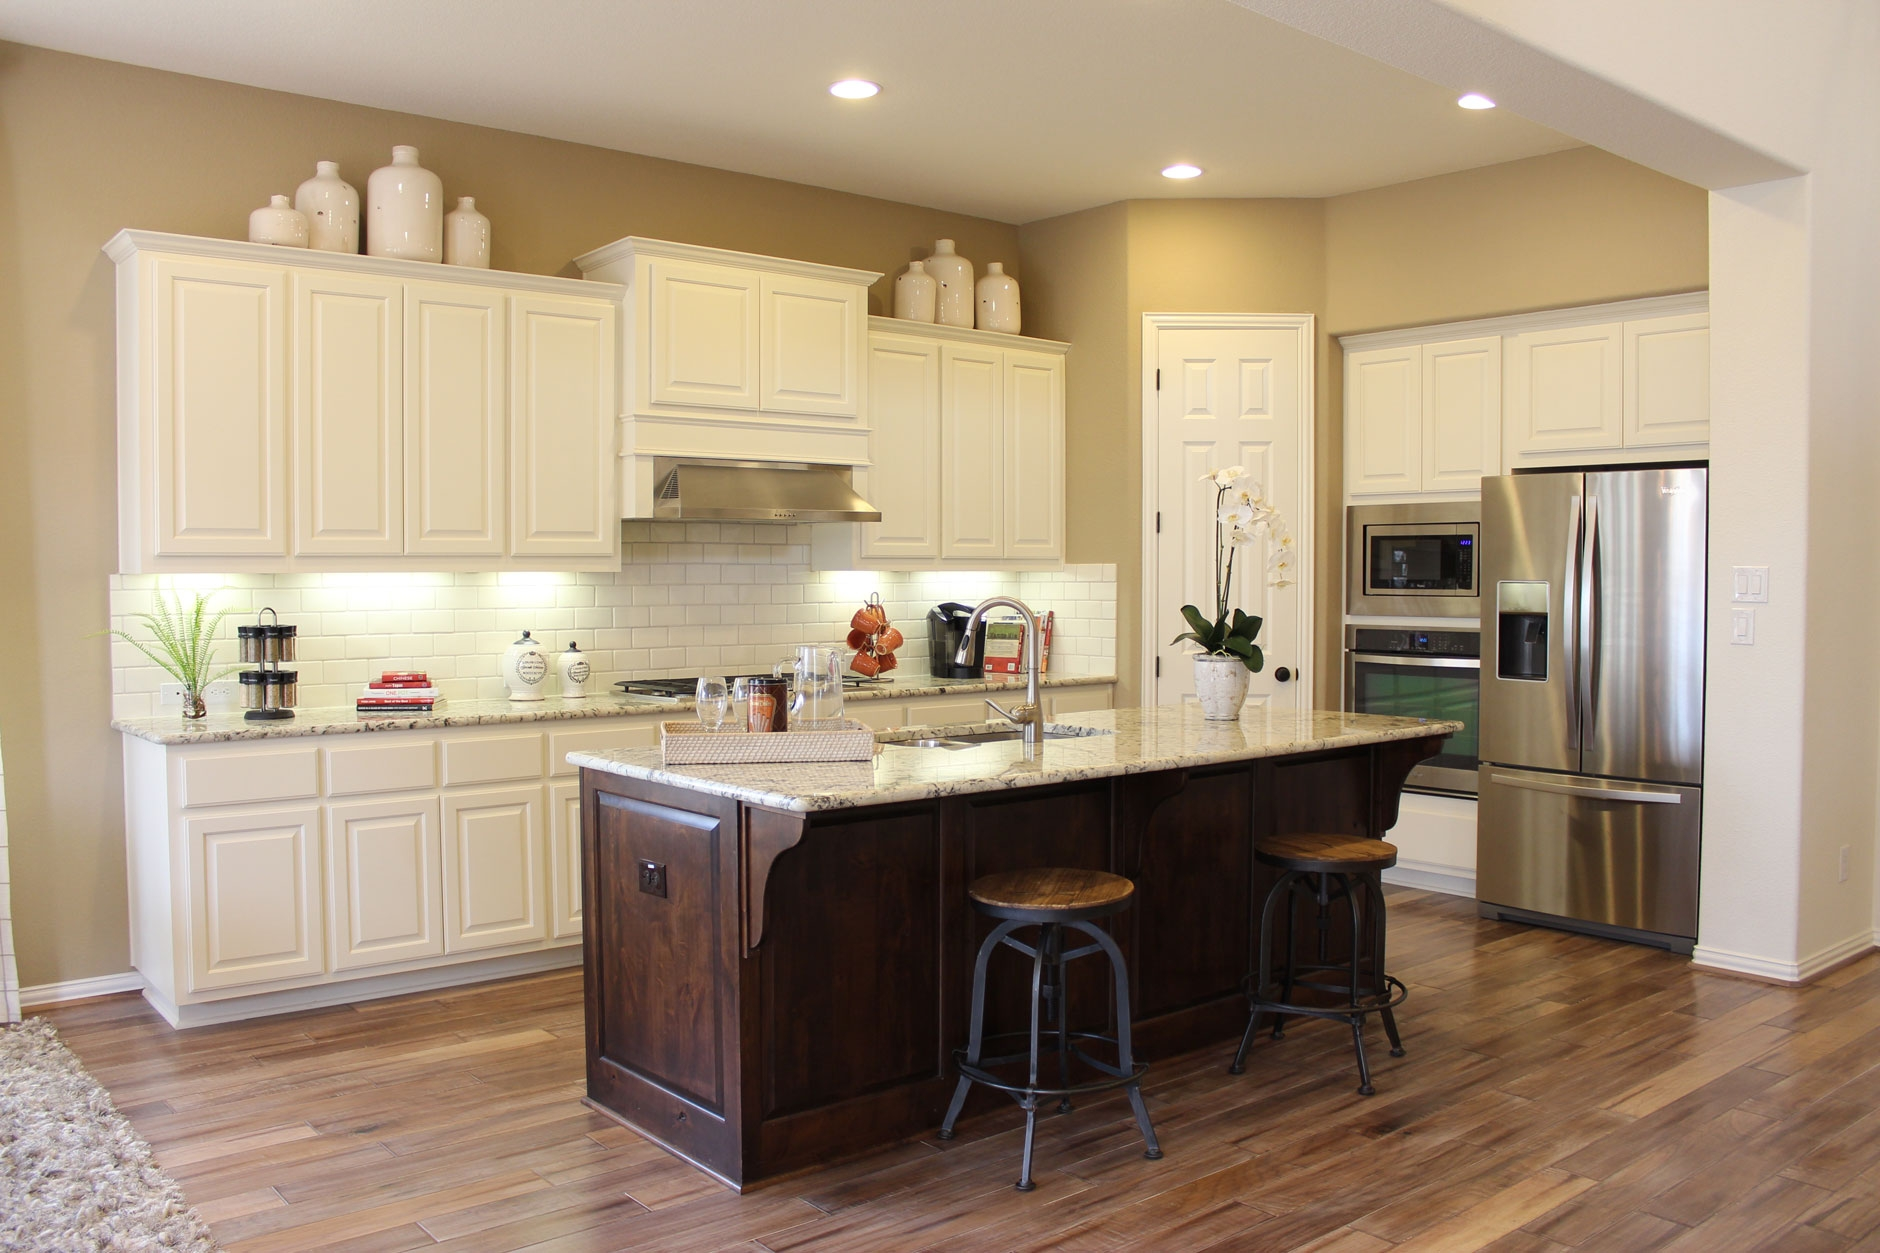 Permalink to Choosing Kitchen Cabinets And Floors